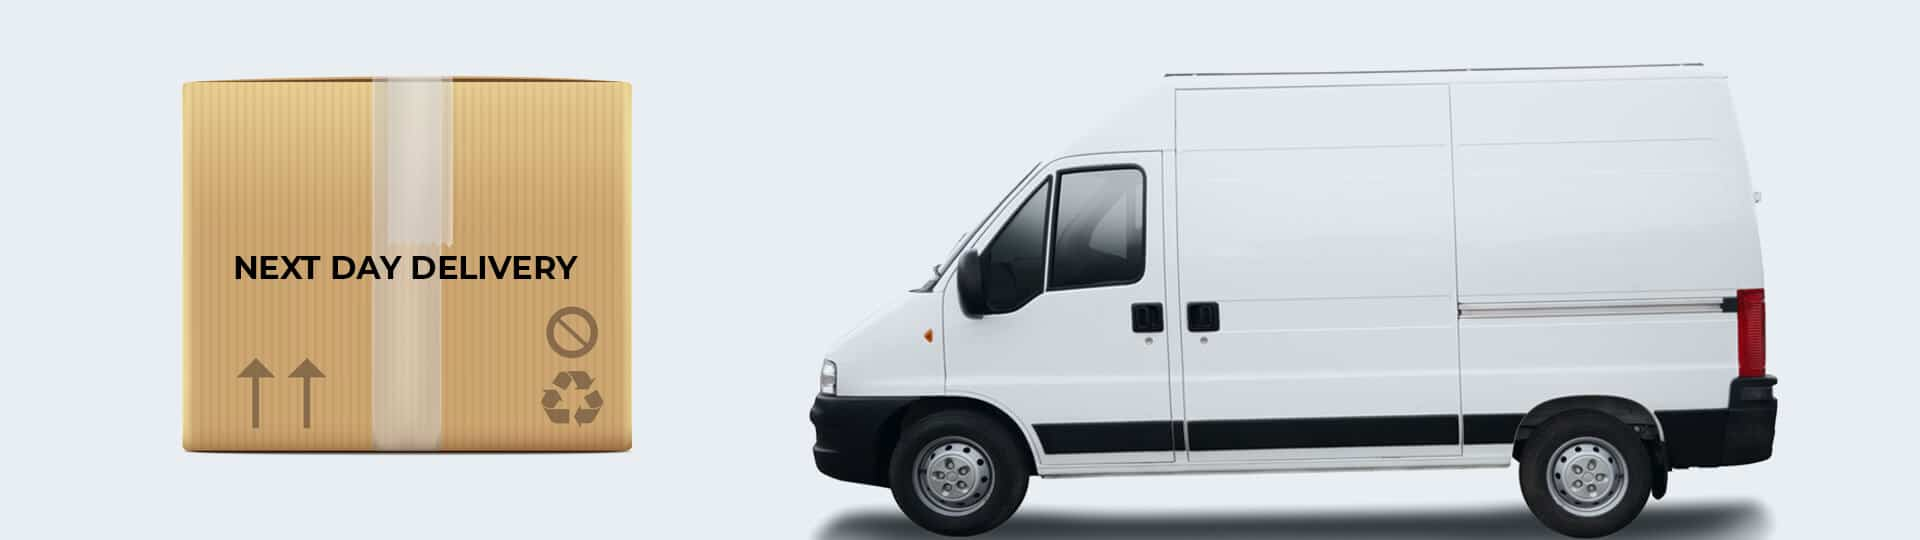 next day delivery, delivery truck for office supplies